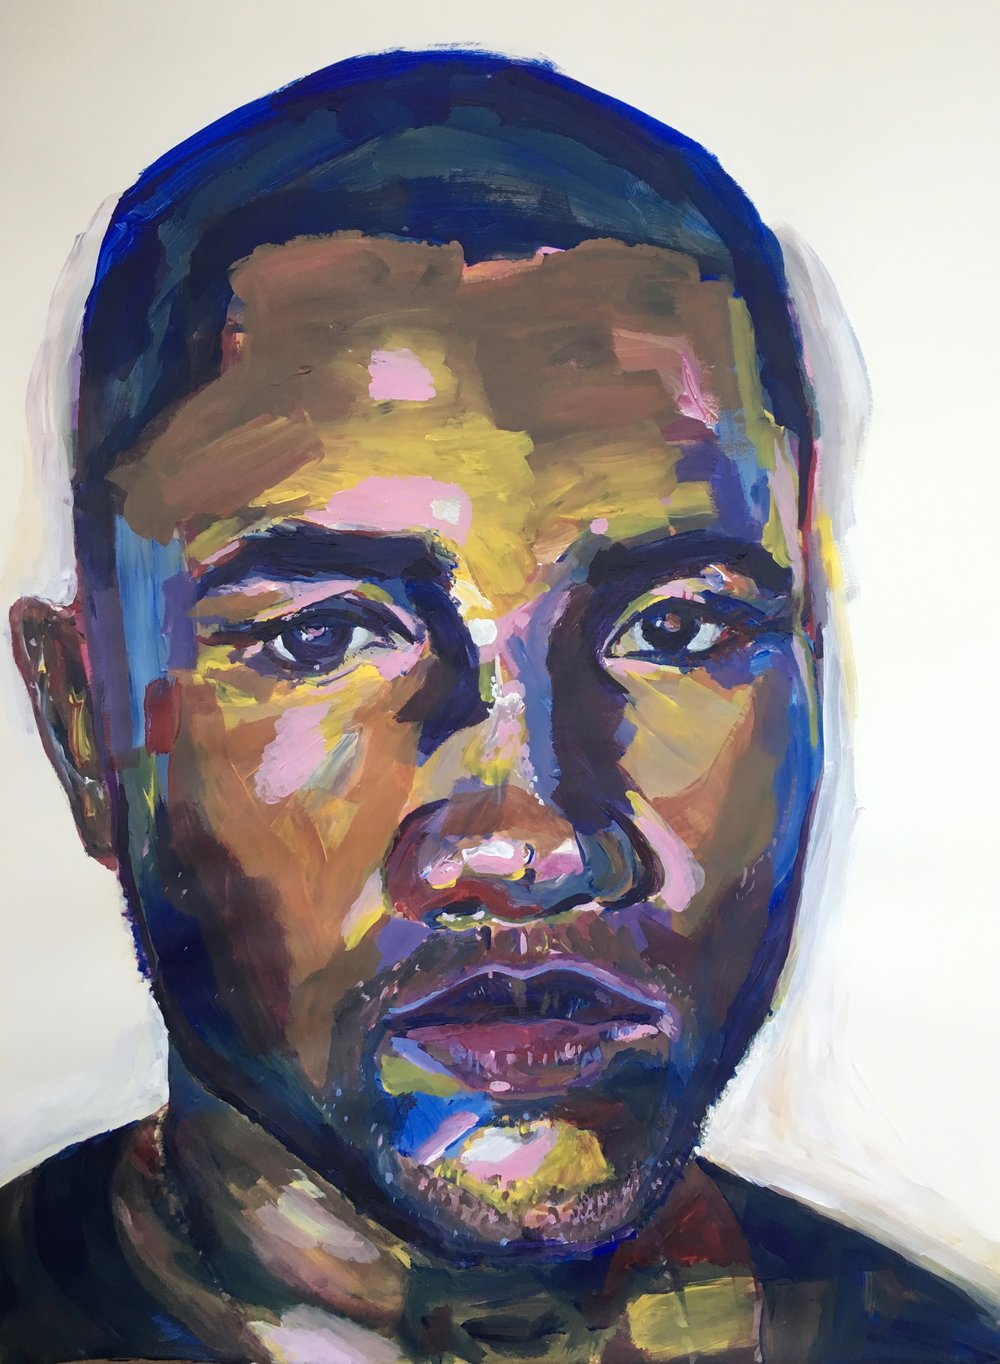 Frank Ocean, 2017 | Acrylic paint on paper, 18x24""